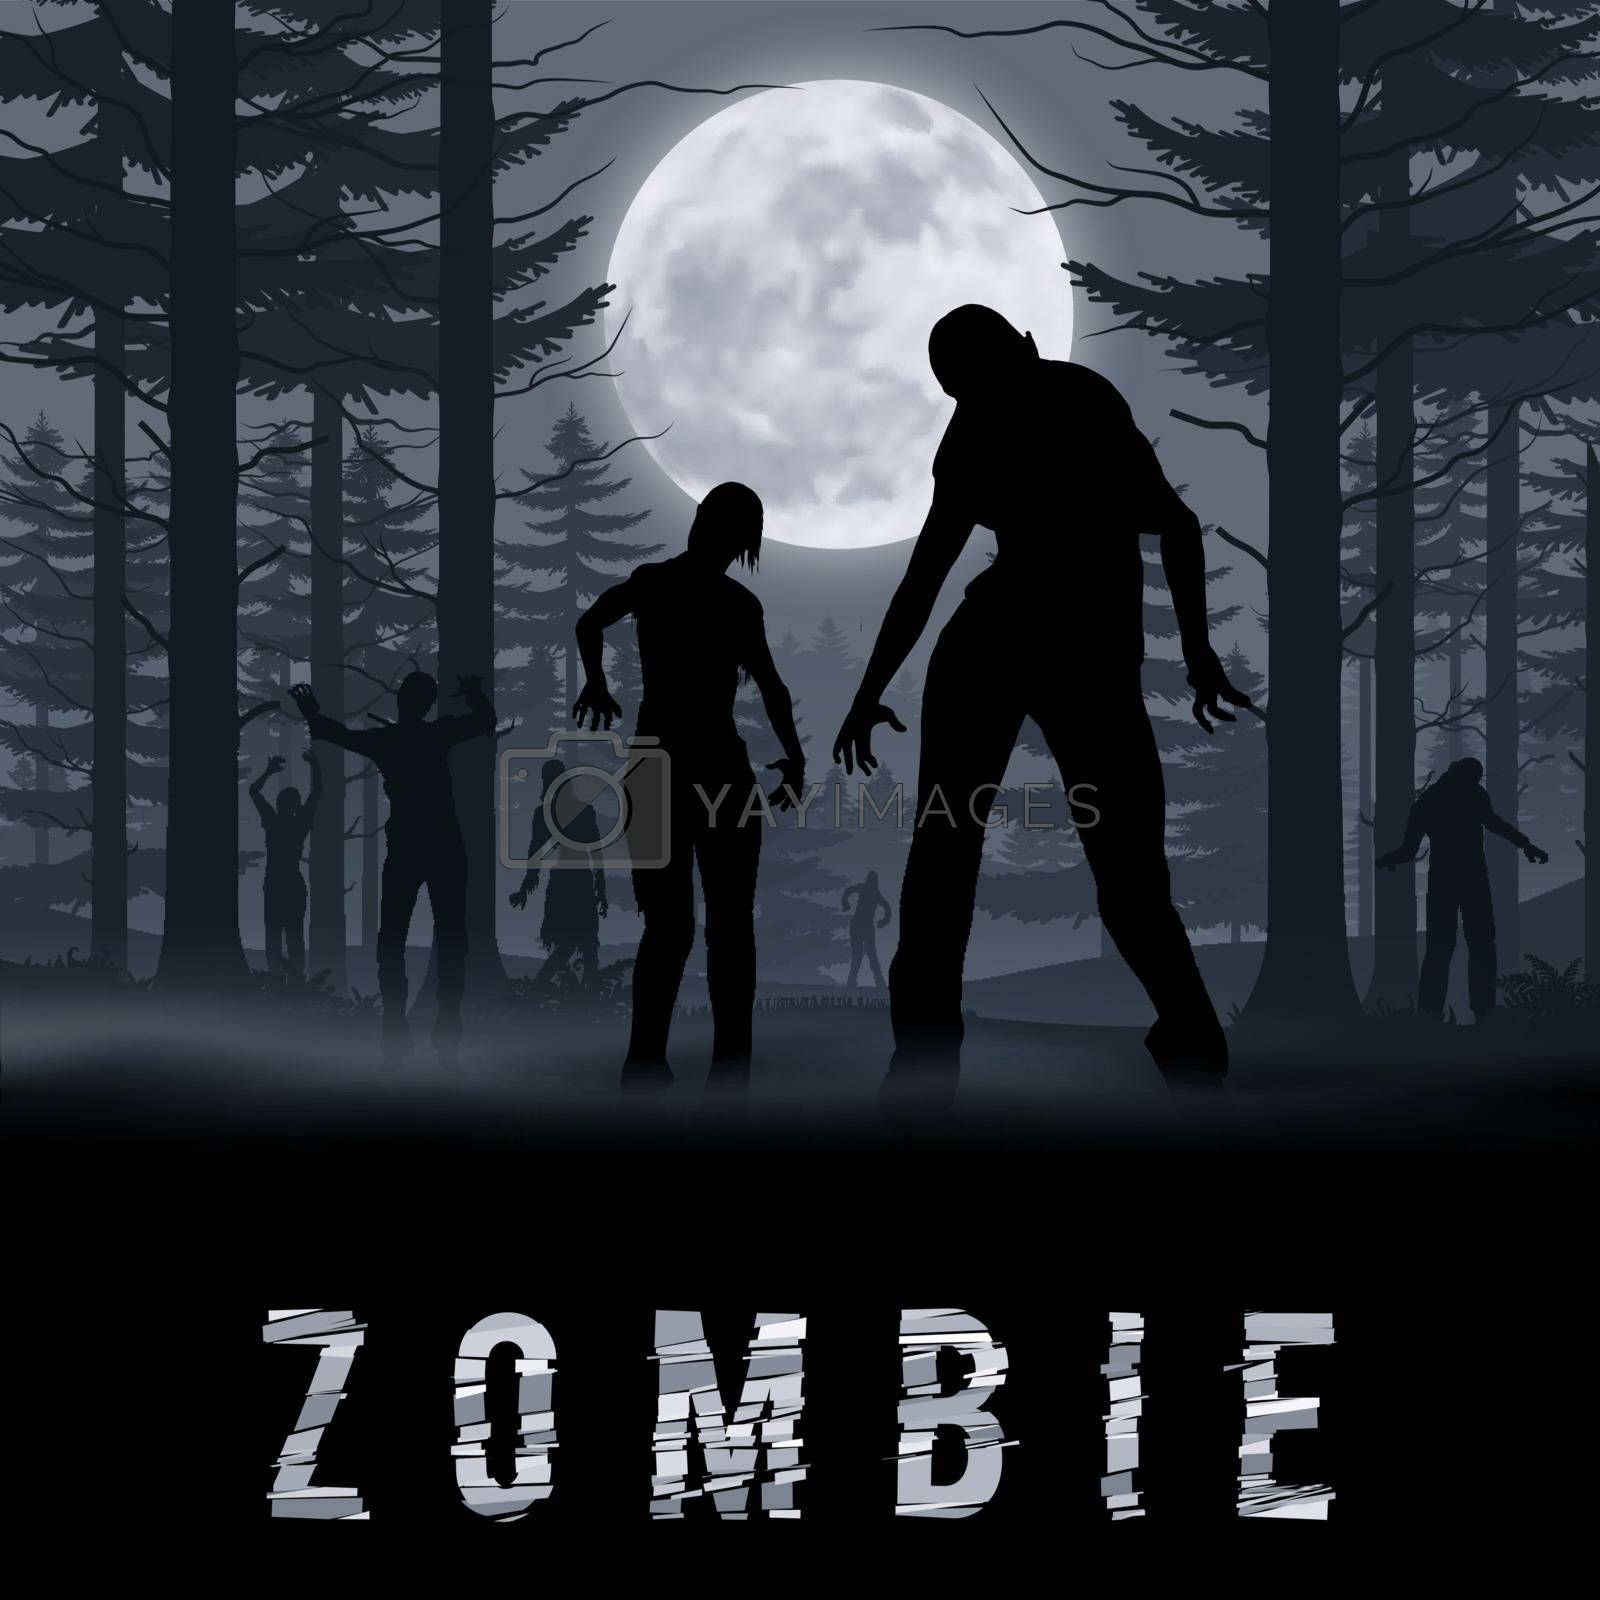 Zombie Walking out From Night Forest. Silhouettes Illustration for Halloween Poster